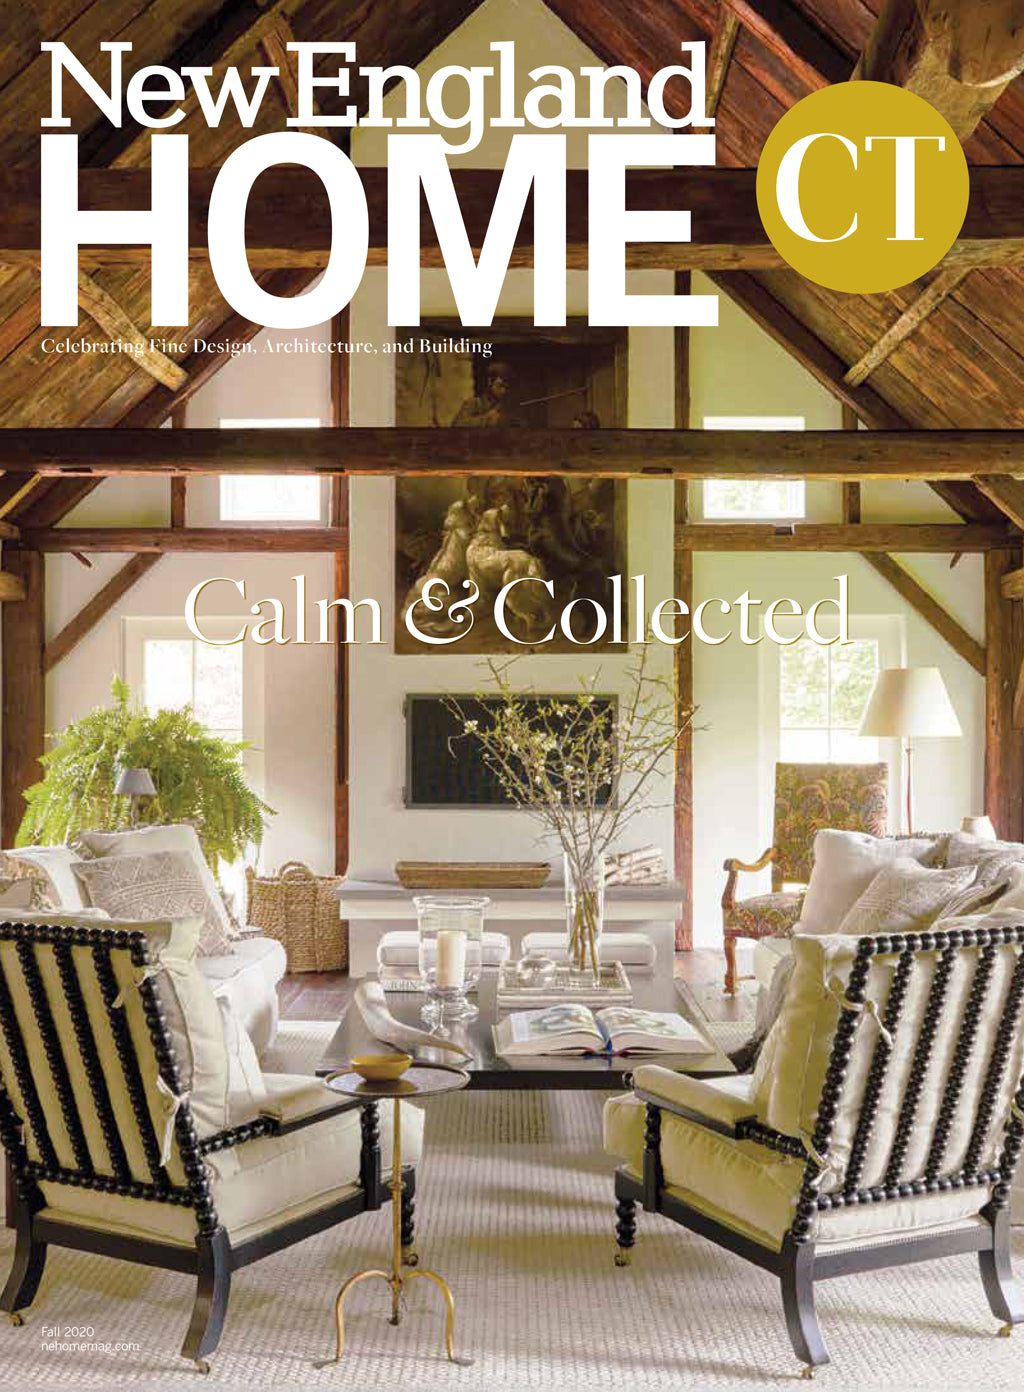 New England Home Connecticut Cover Print Featuring DBO HOME Artisan Furniture and Ceramics